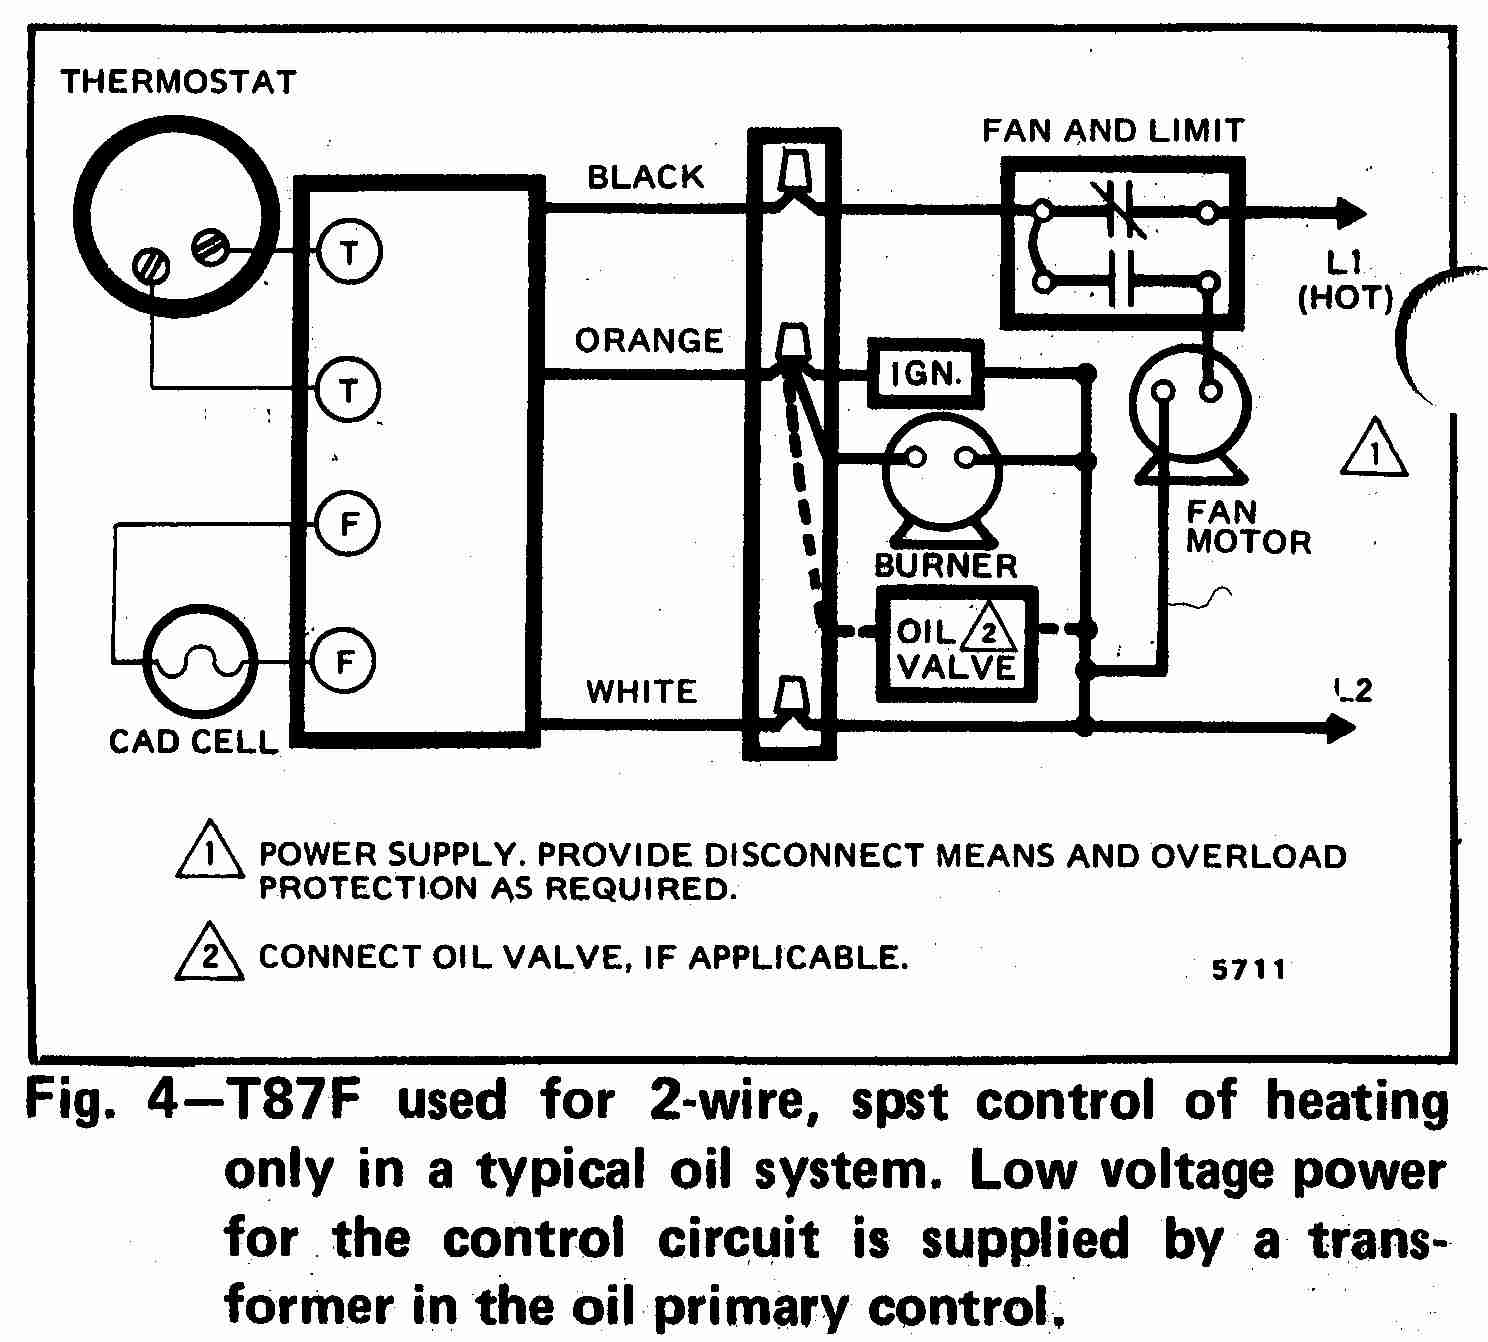 TT_T87F_0002_2W_DJF room thermostat wiring diagrams for hvac systems hvac wiring diagrams at readyjetset.co